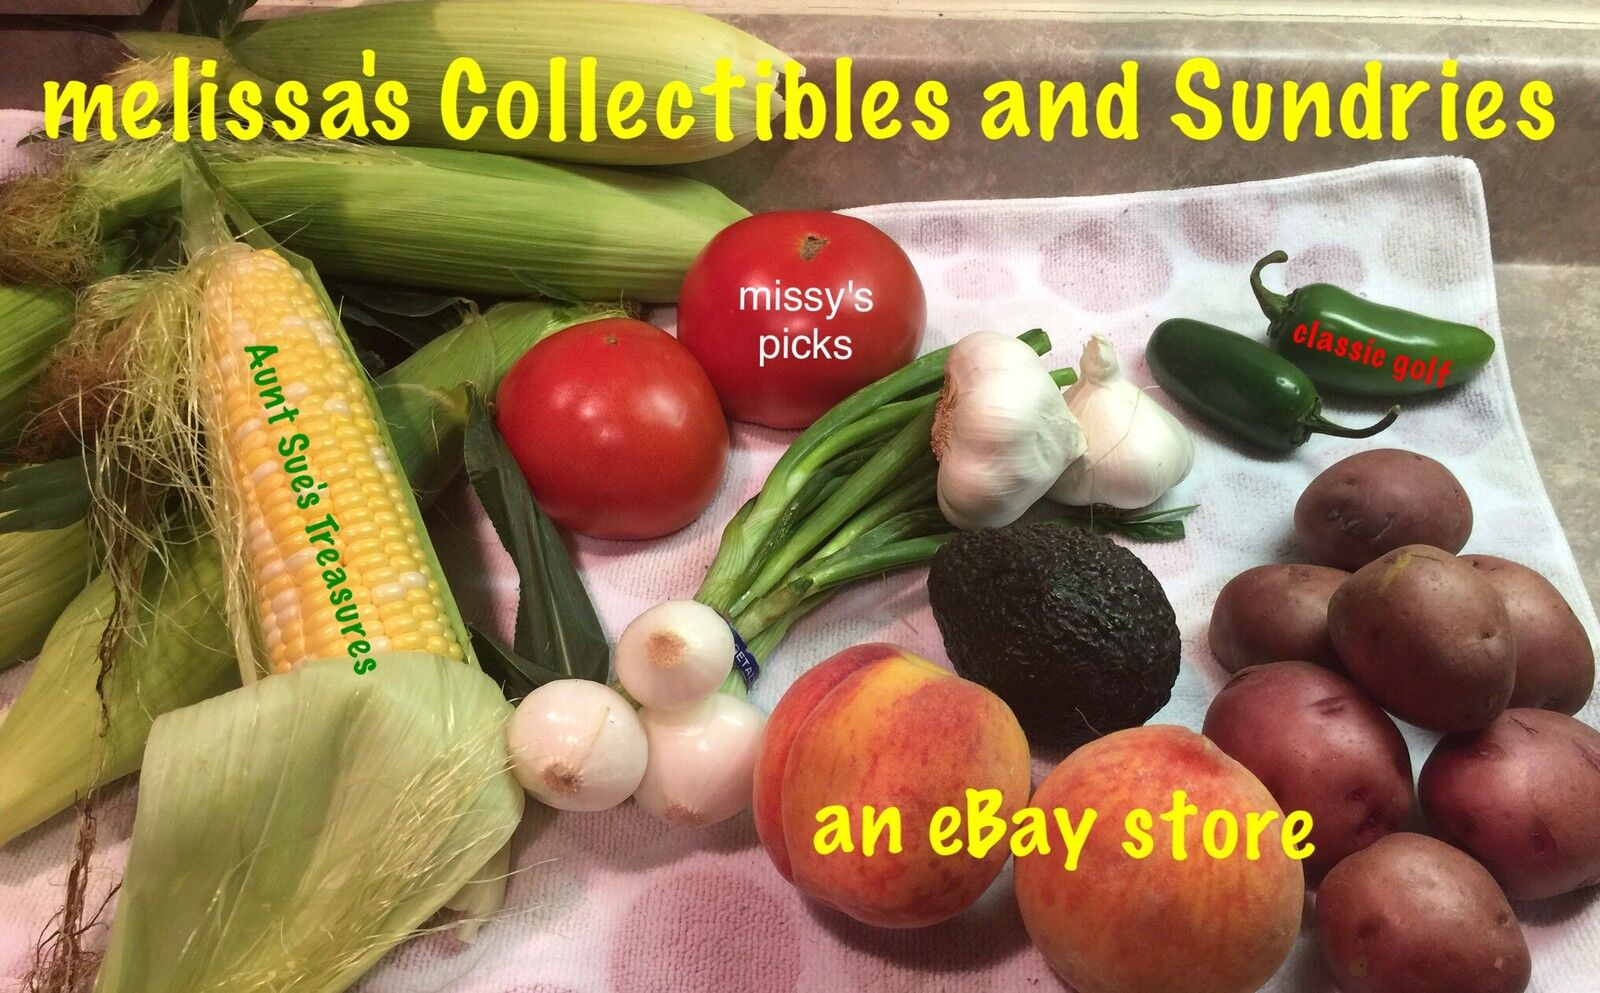 melissa's Collectibles & Sundries